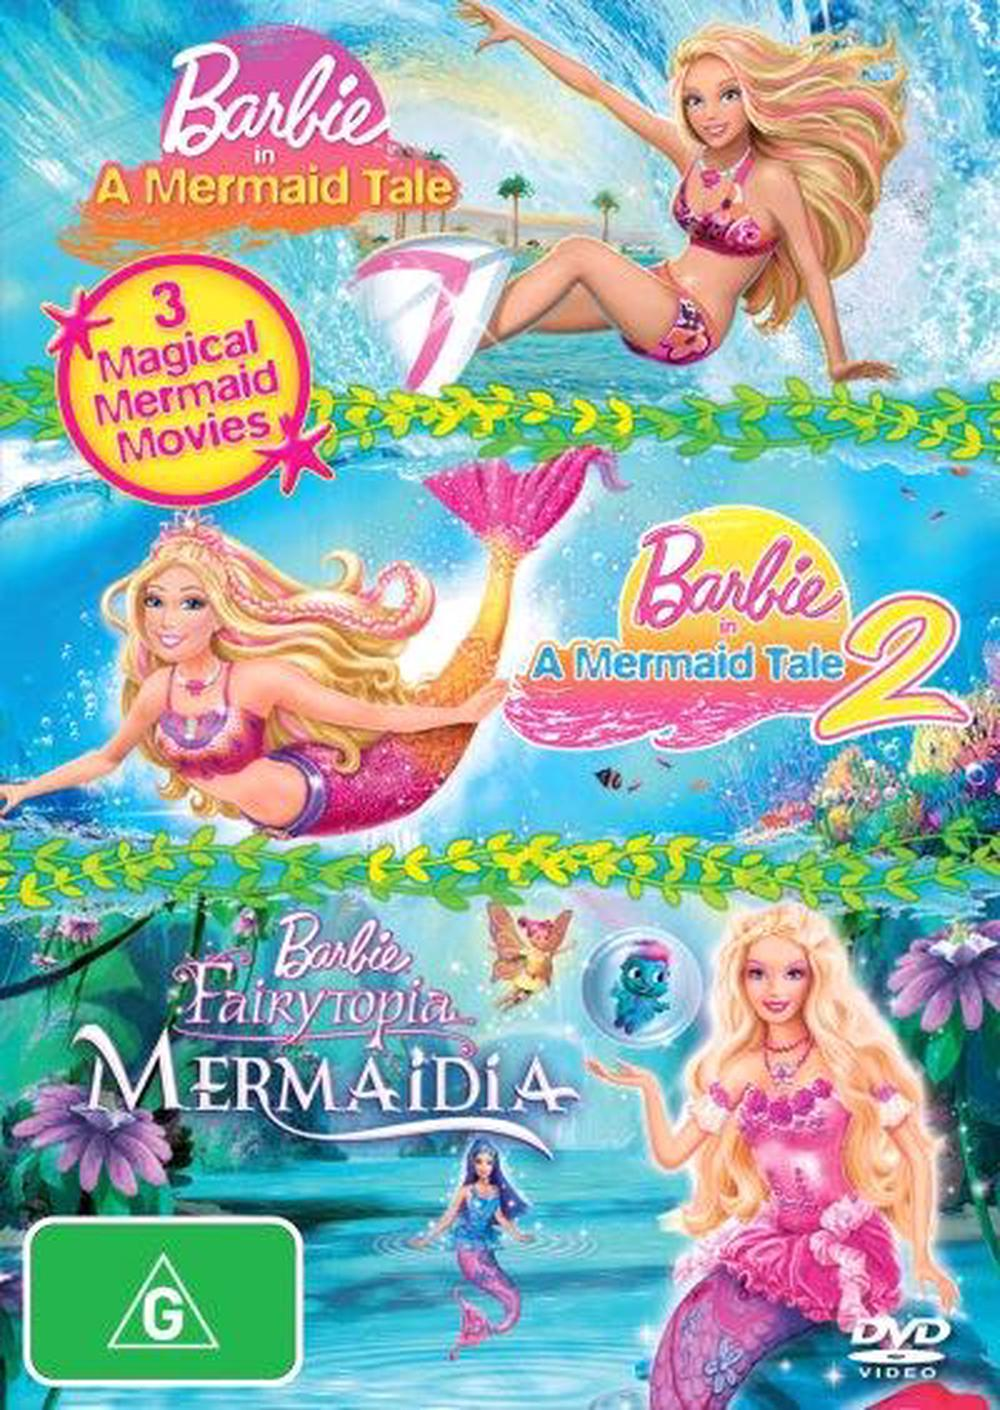 Barbie In A Mermaid Tale / Barbie In A Mermaid Tale 2 / Barbie - Fairytopia - Mermaidia